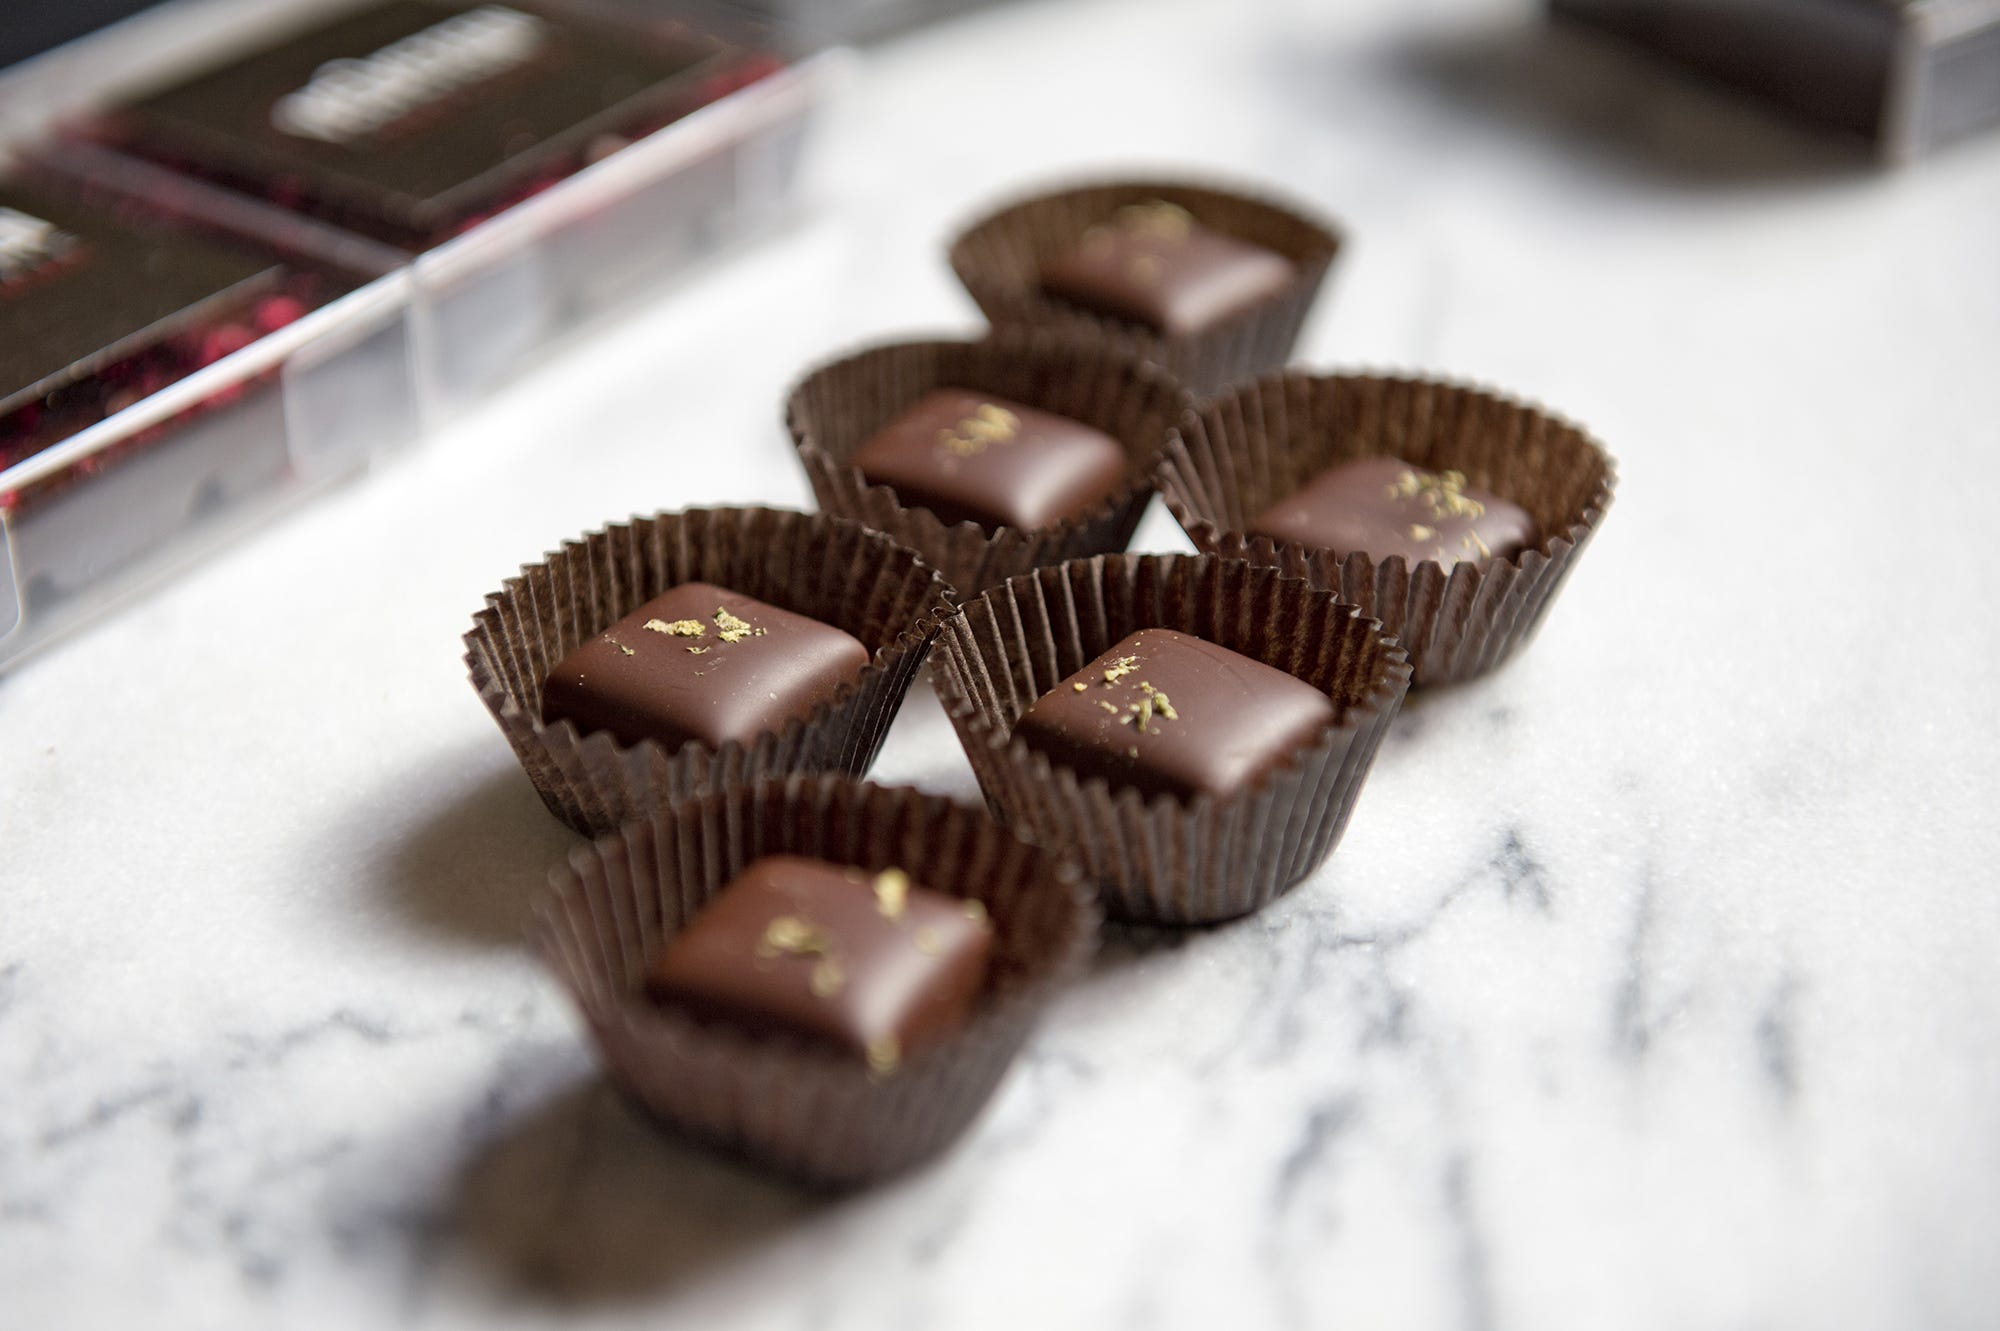 Http Picture Gallery Entertainment Dining 2018 06 Austin Wedges Meagan Brown Cokelat 40 636219635609712389 0215chocolate 05